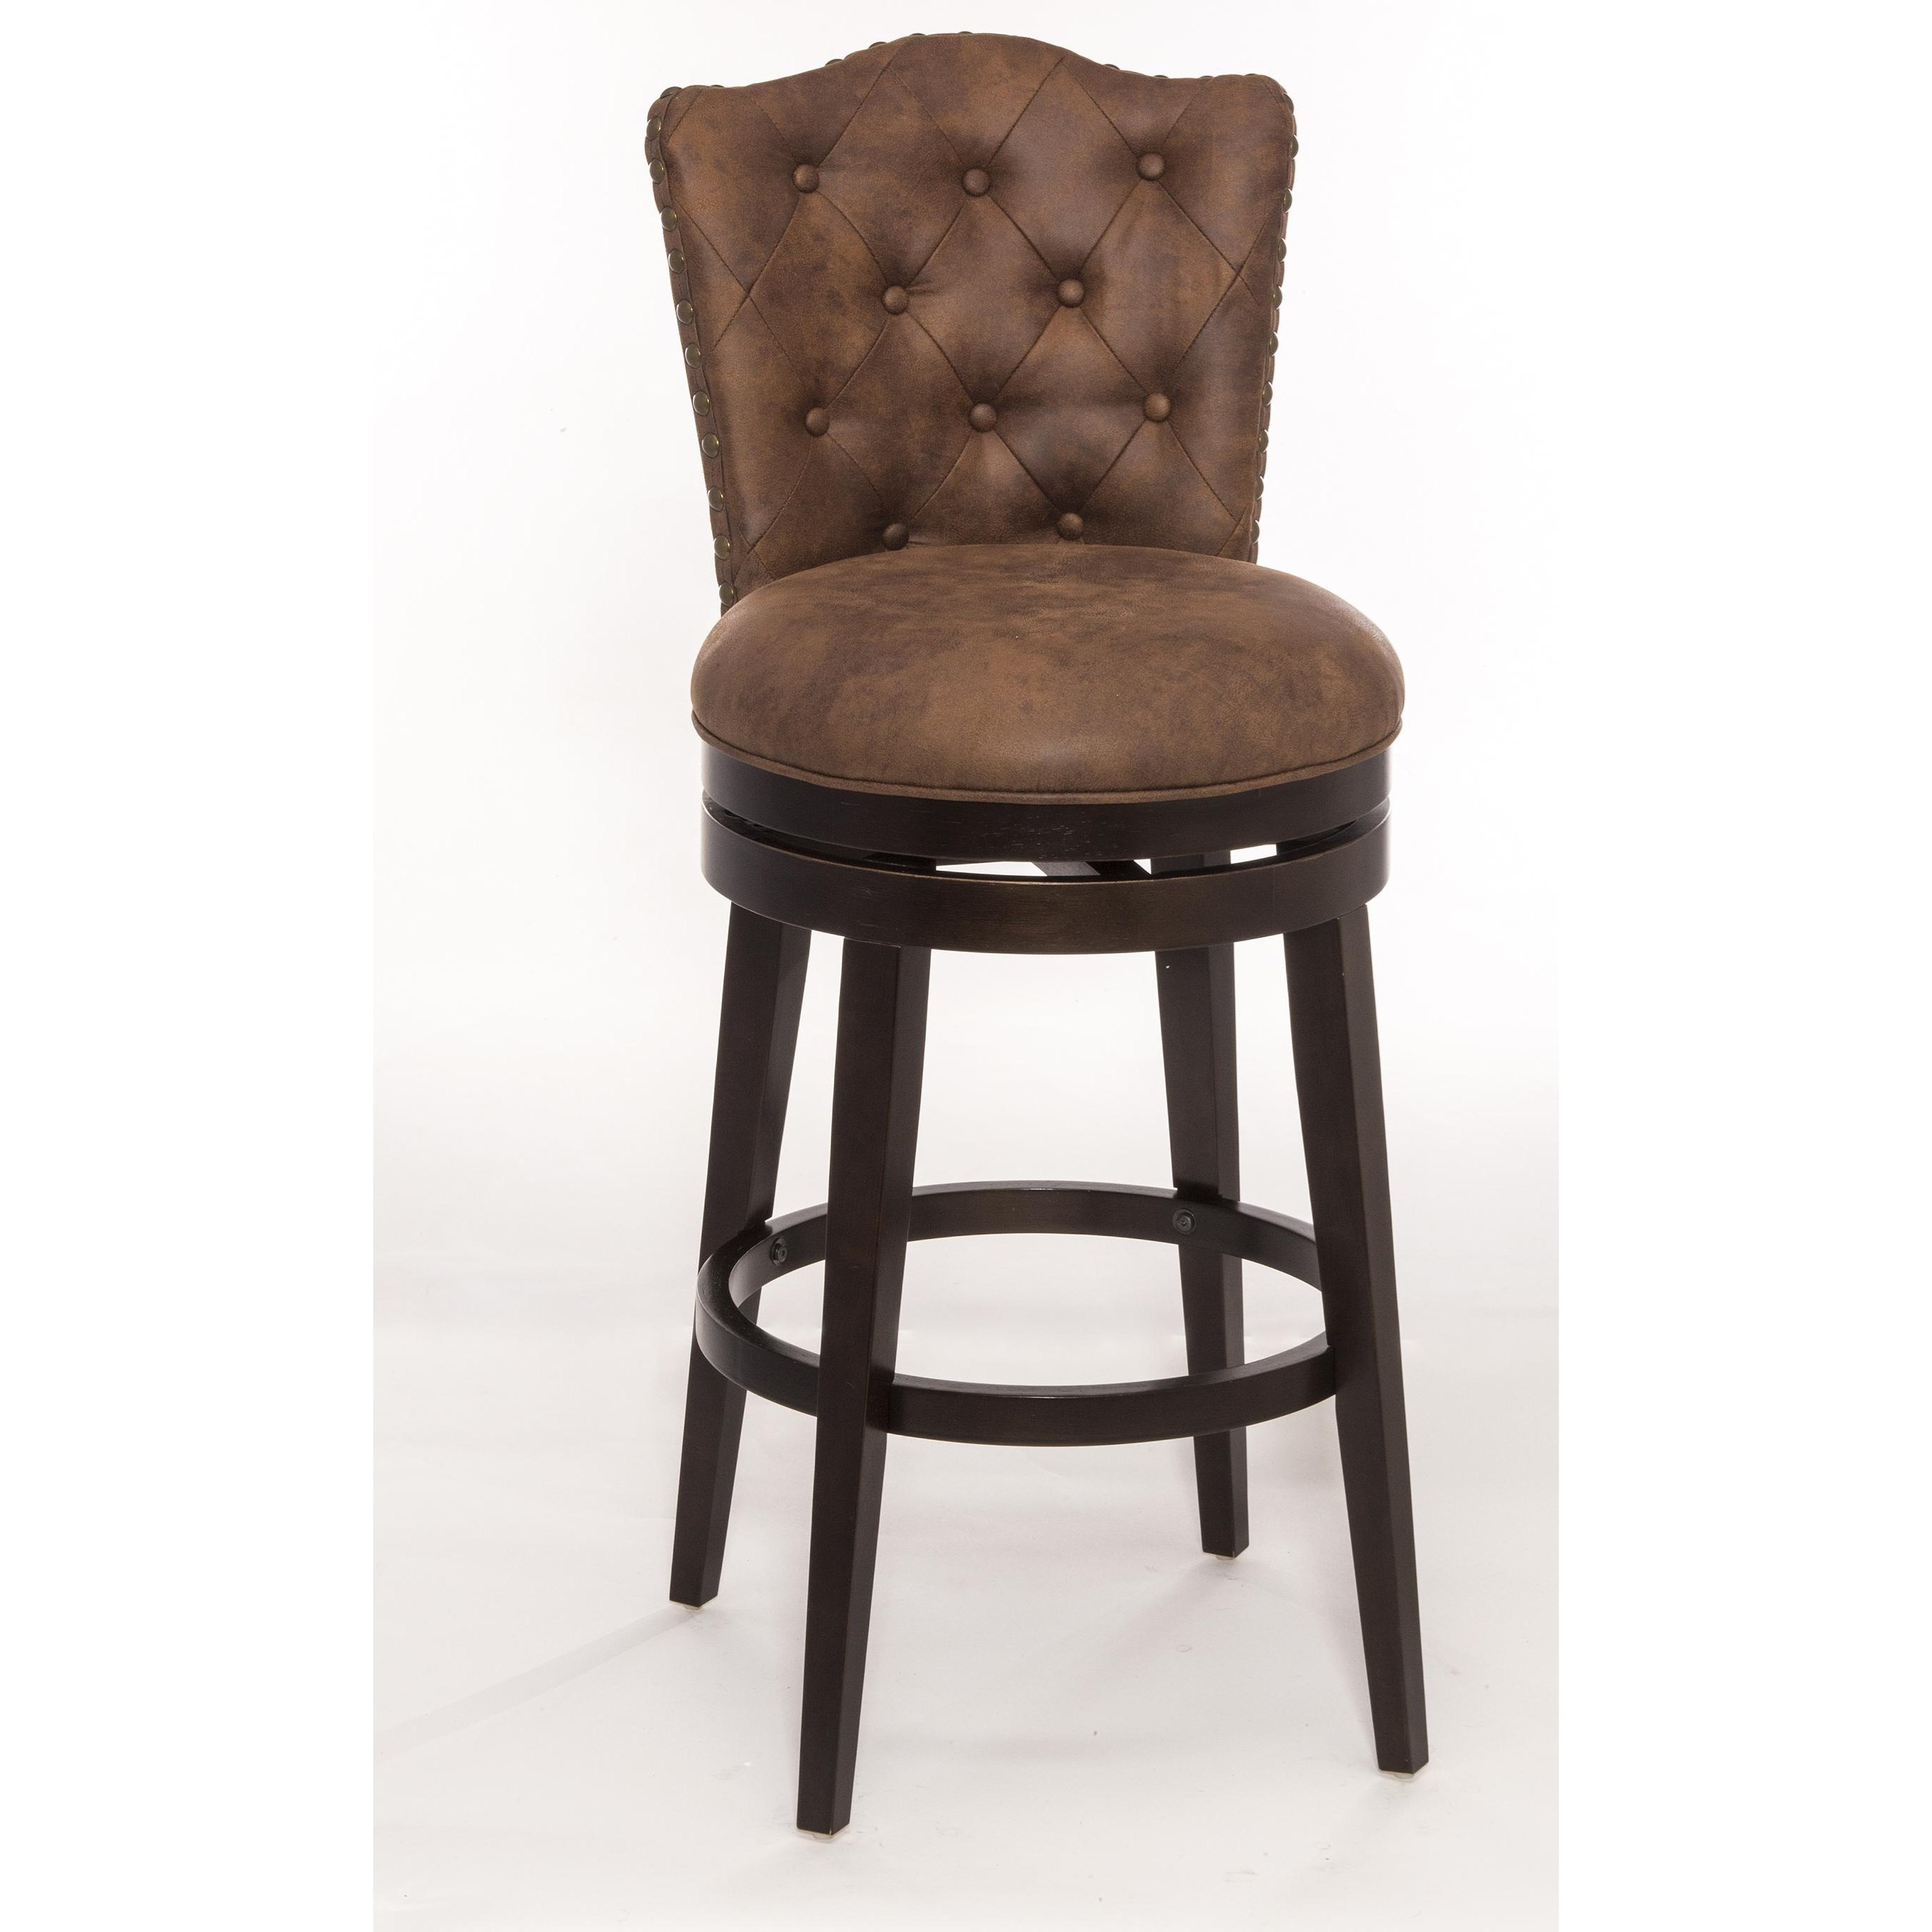 Hillsdale Wood Stools 5945 830 Swivel Bar Stool With